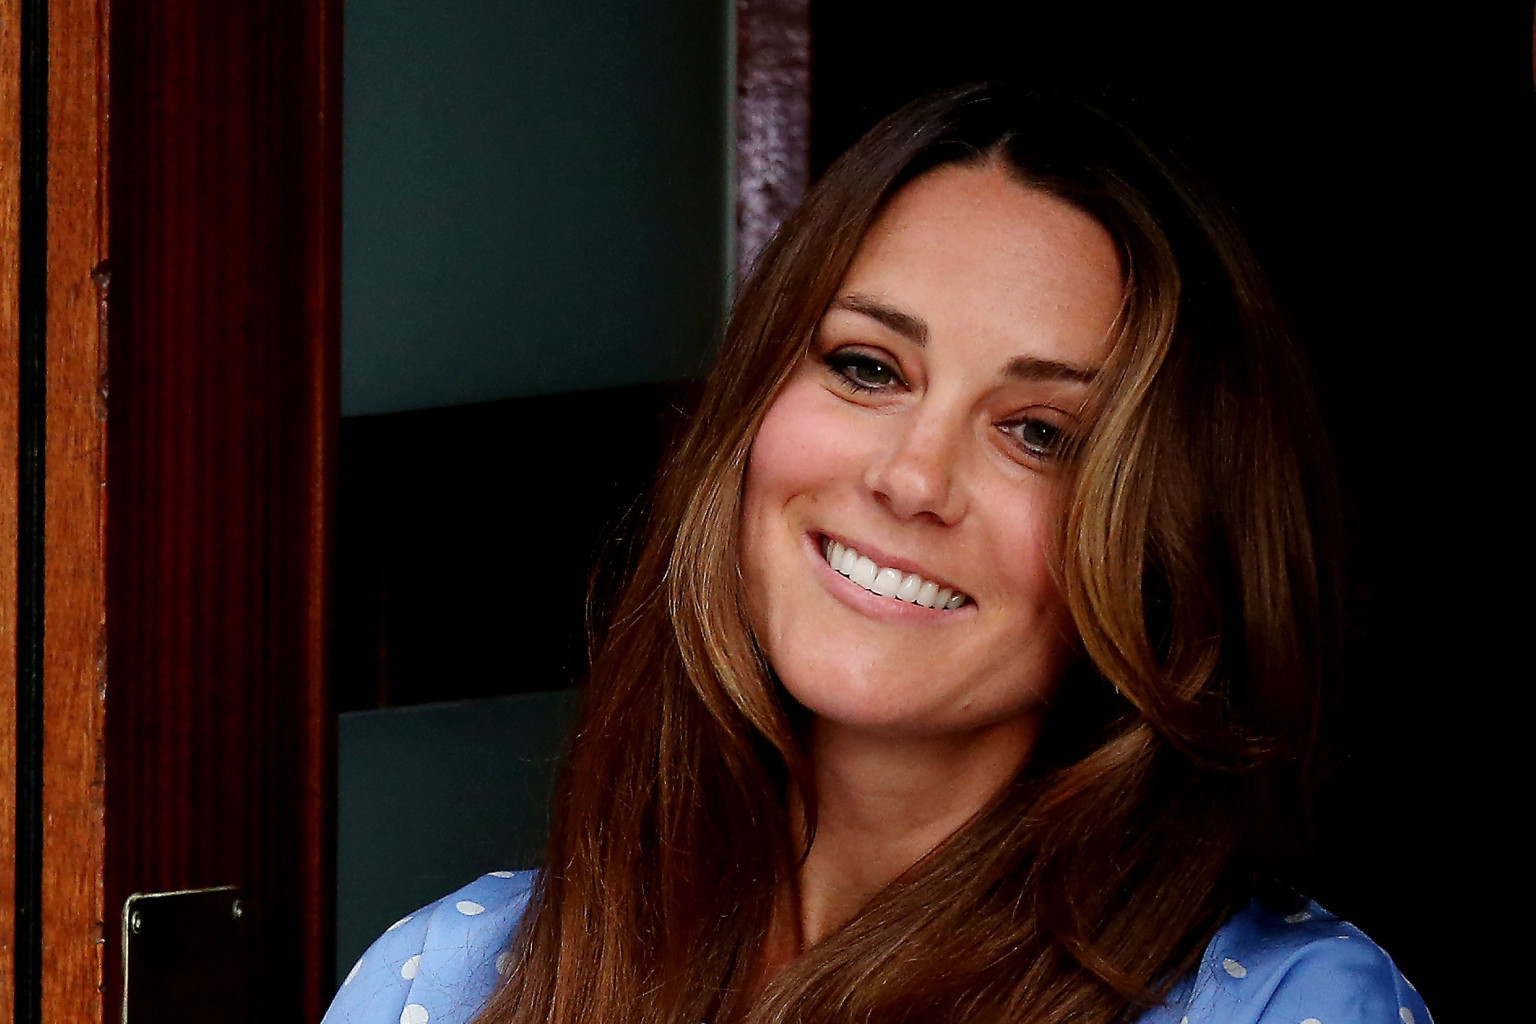 Kate Middleton Background